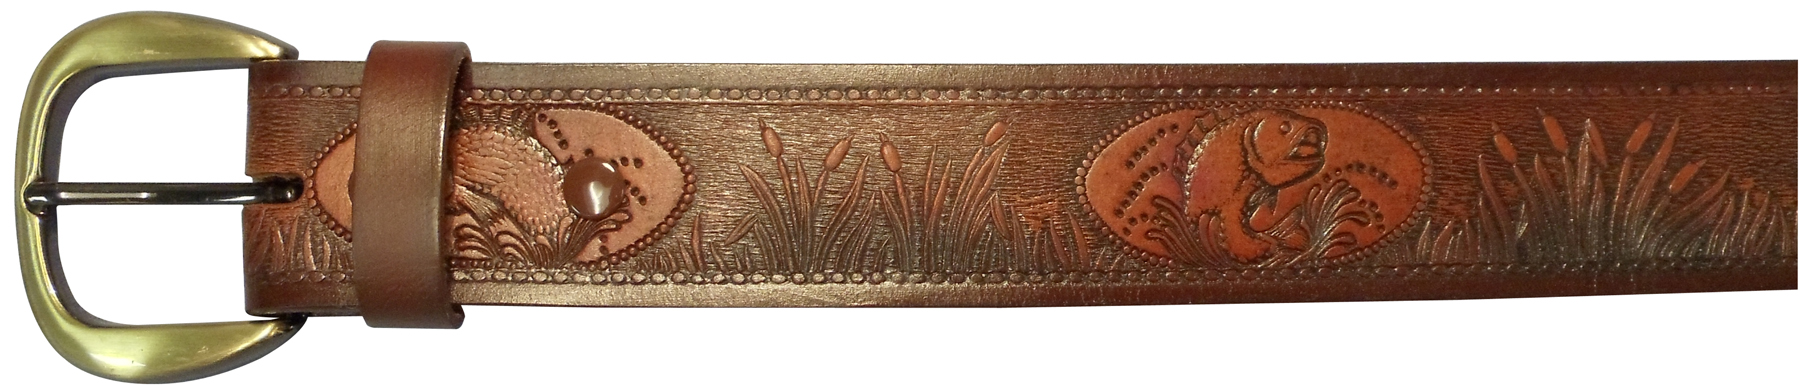 """10610170232 - 32"""" Brown Leather Belt With Fish Design"""